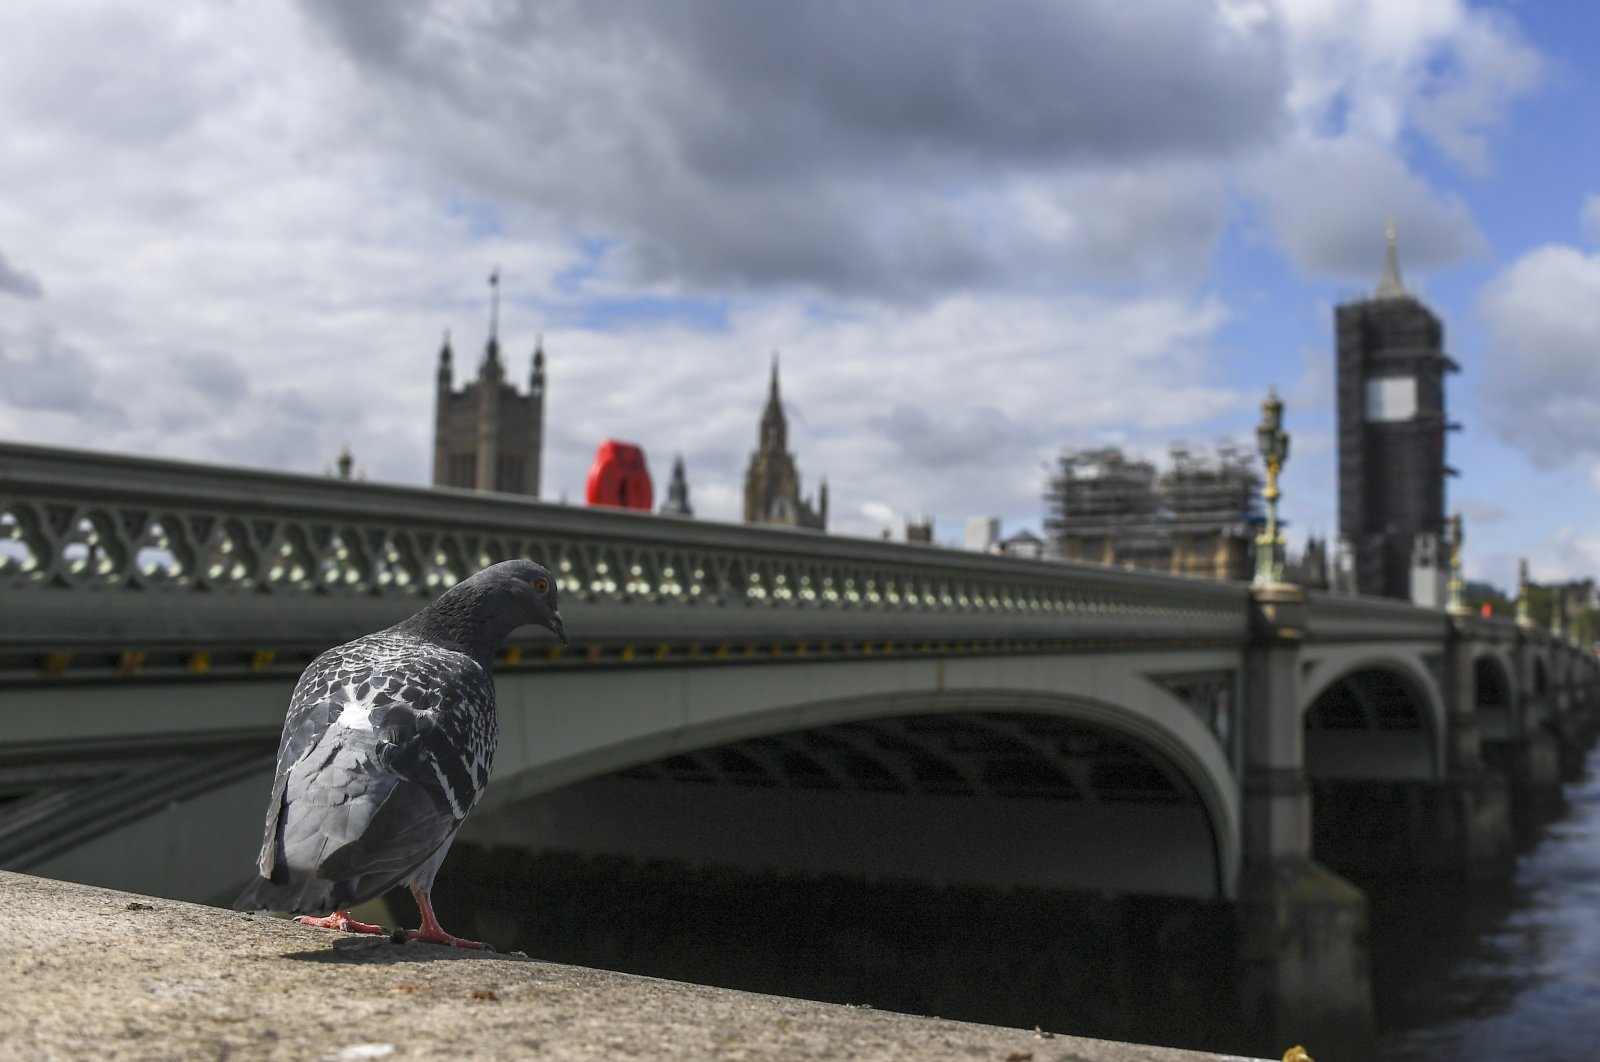 A pigeon stands on the south bank of the river Thames, against the backdrop of the Houses of Parliament, as the country continues its lockdown to curb the spread of coronavirus, in London, Friday, May 1, 2020. (AP Photo)